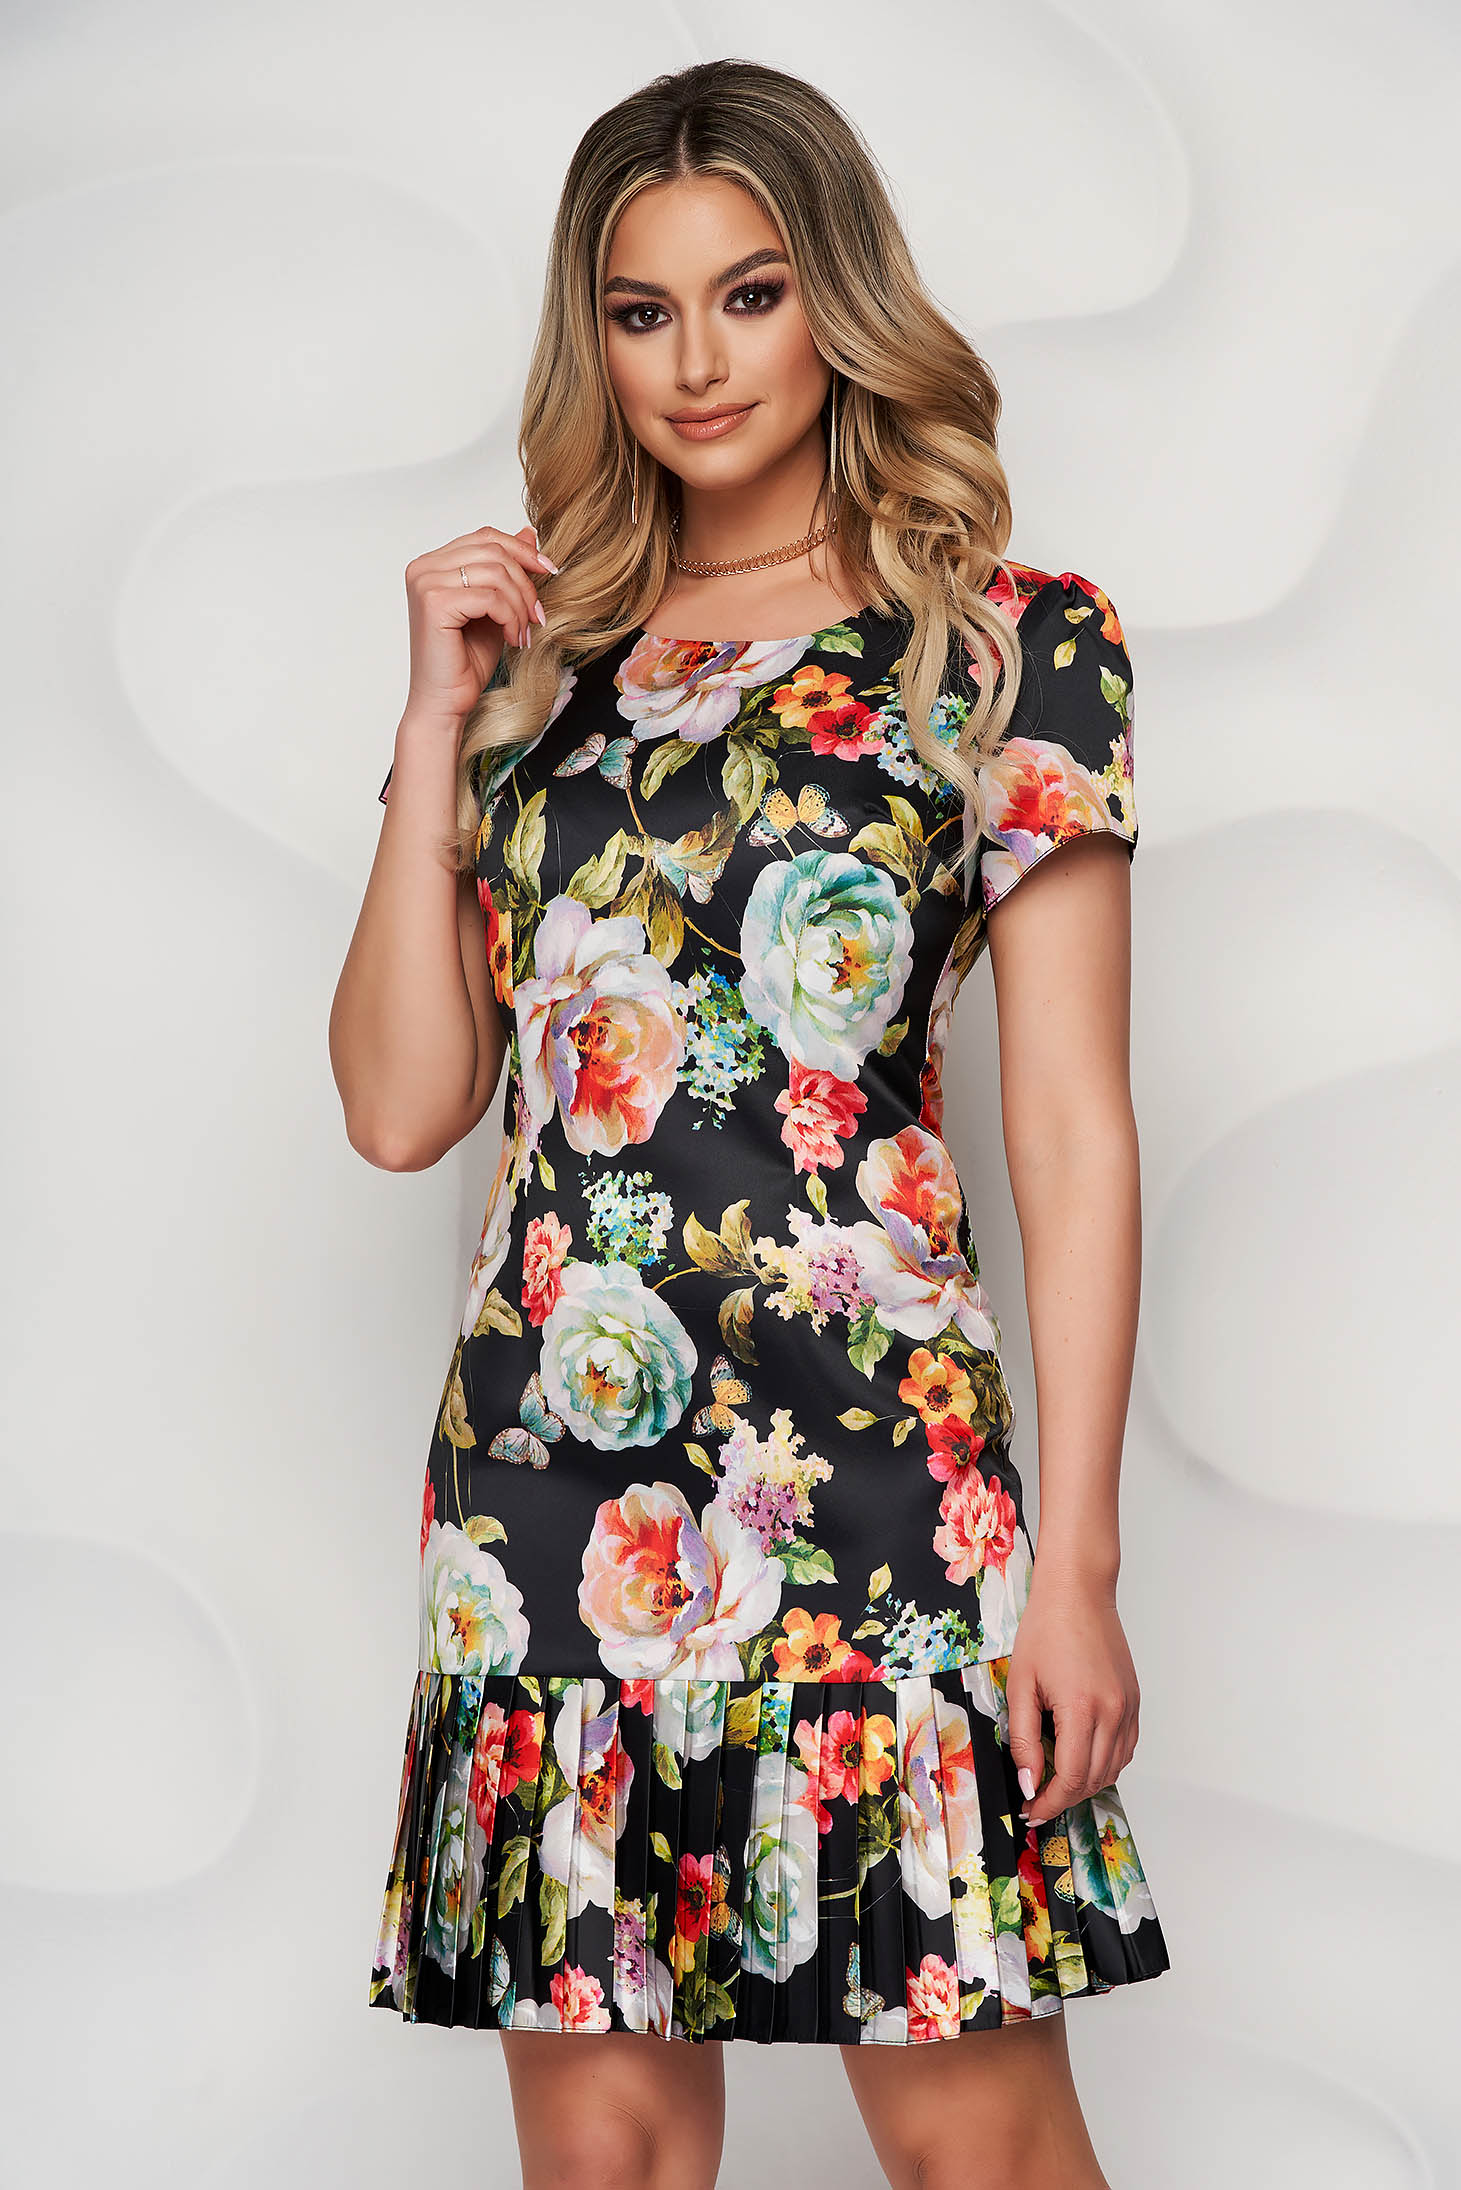 Black dress with floral print midi slightly elastic fabric pleats of material